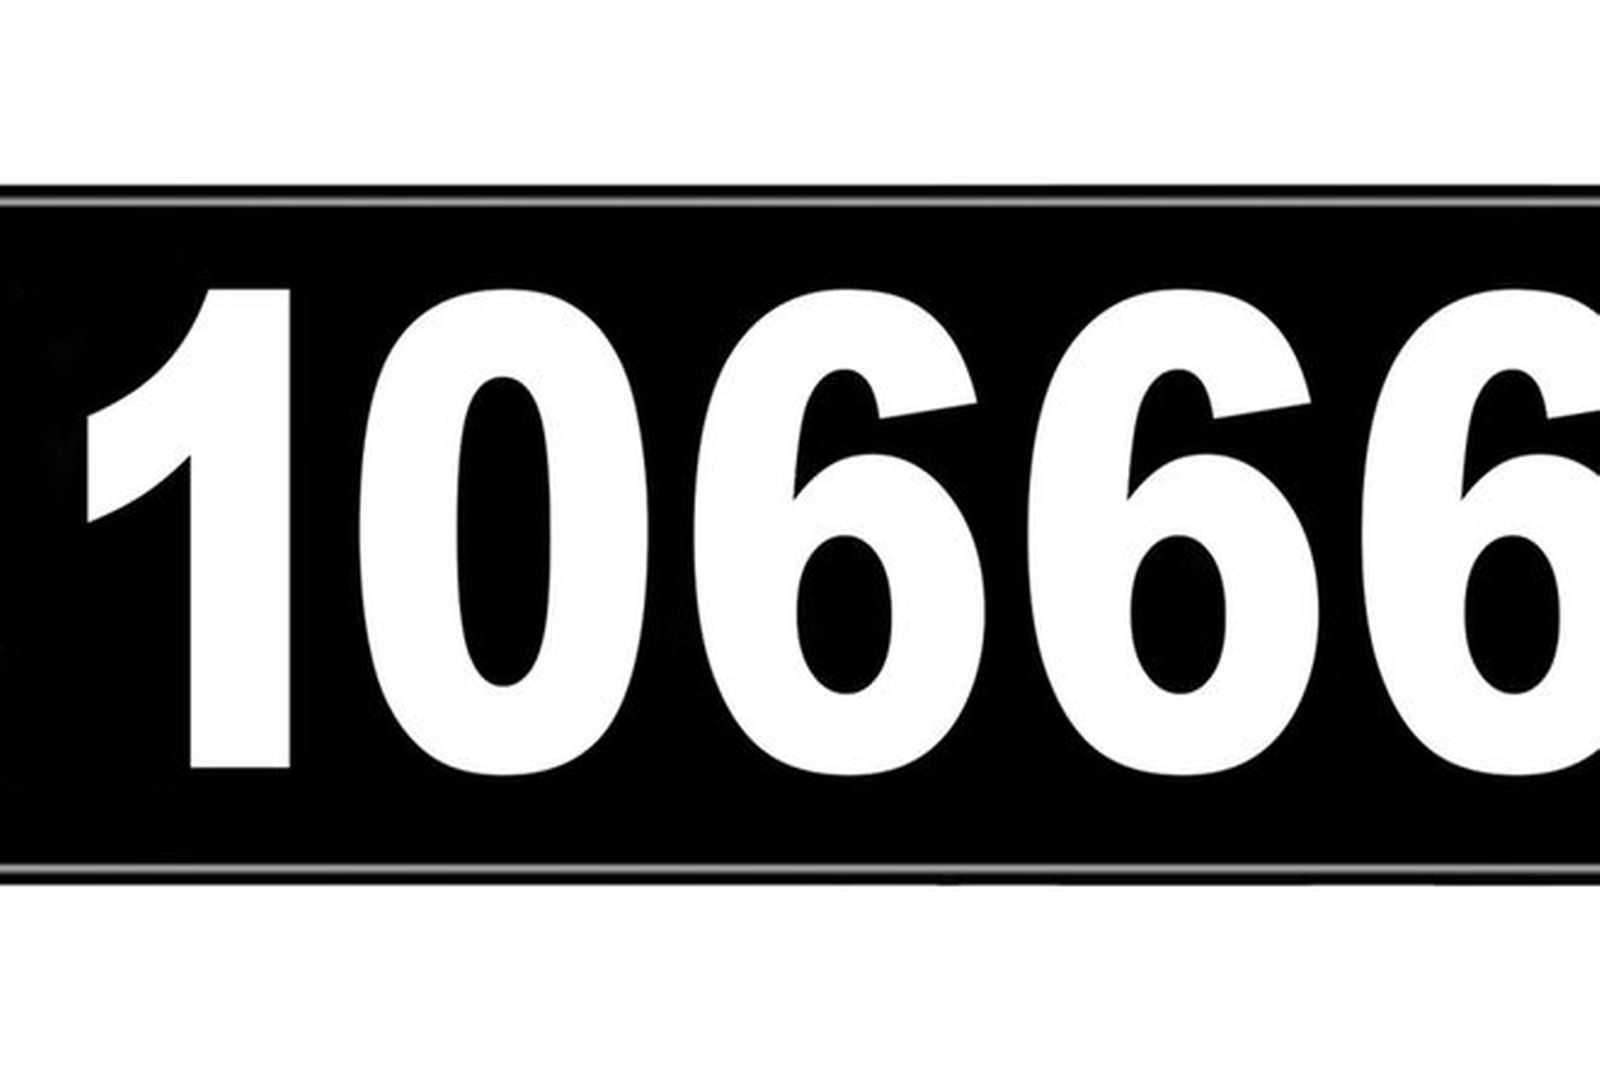 Number Plates - NSW Numerical Number Plates '10666'